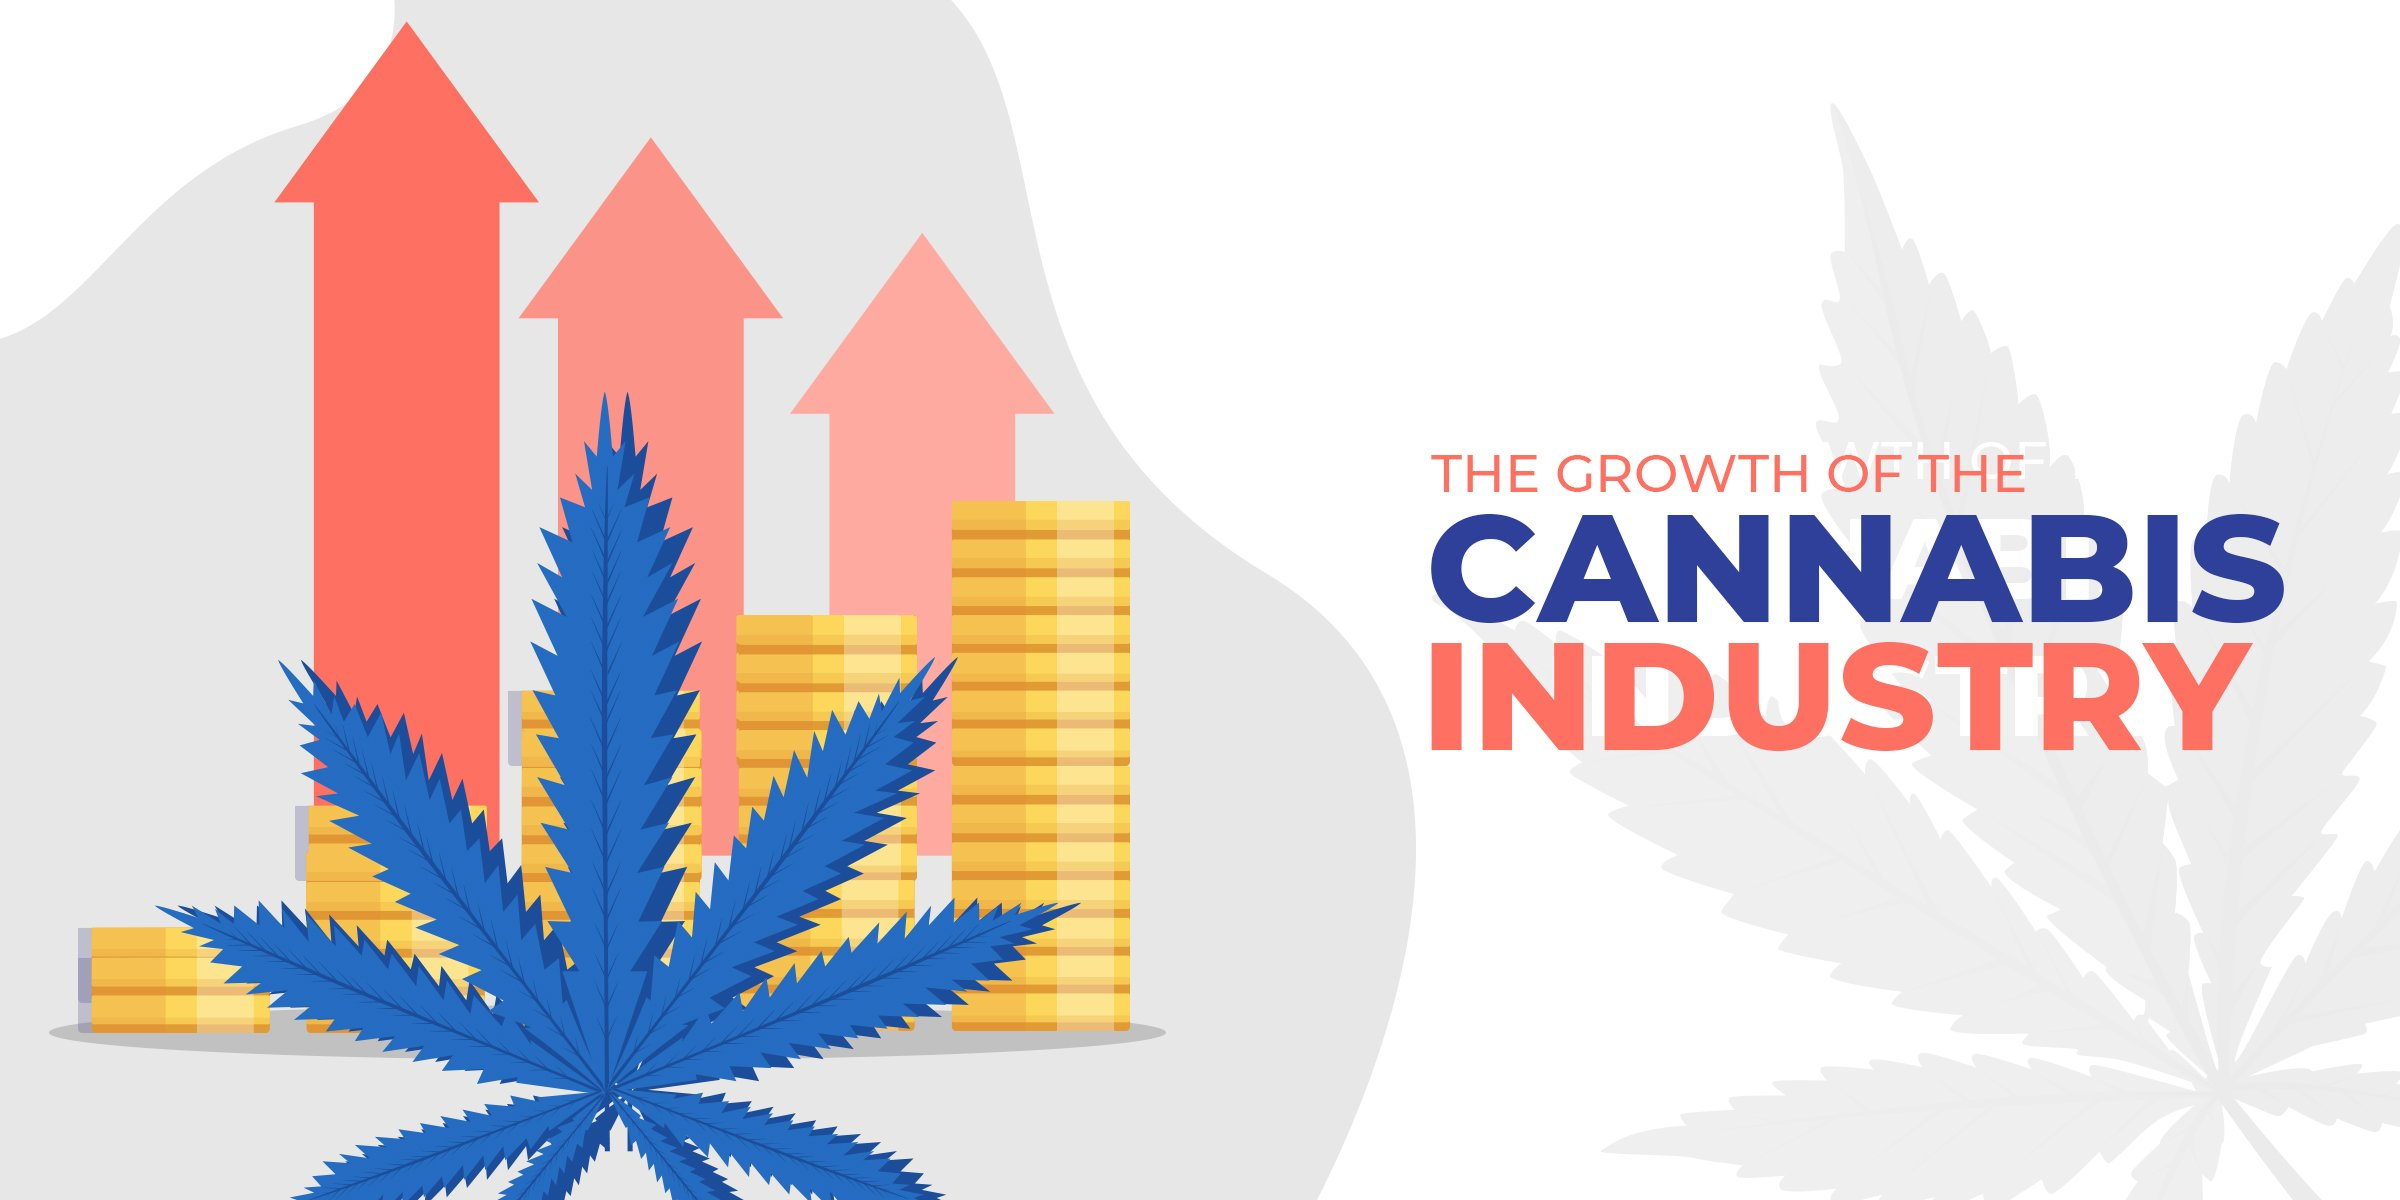 Cannabis Industry Growth